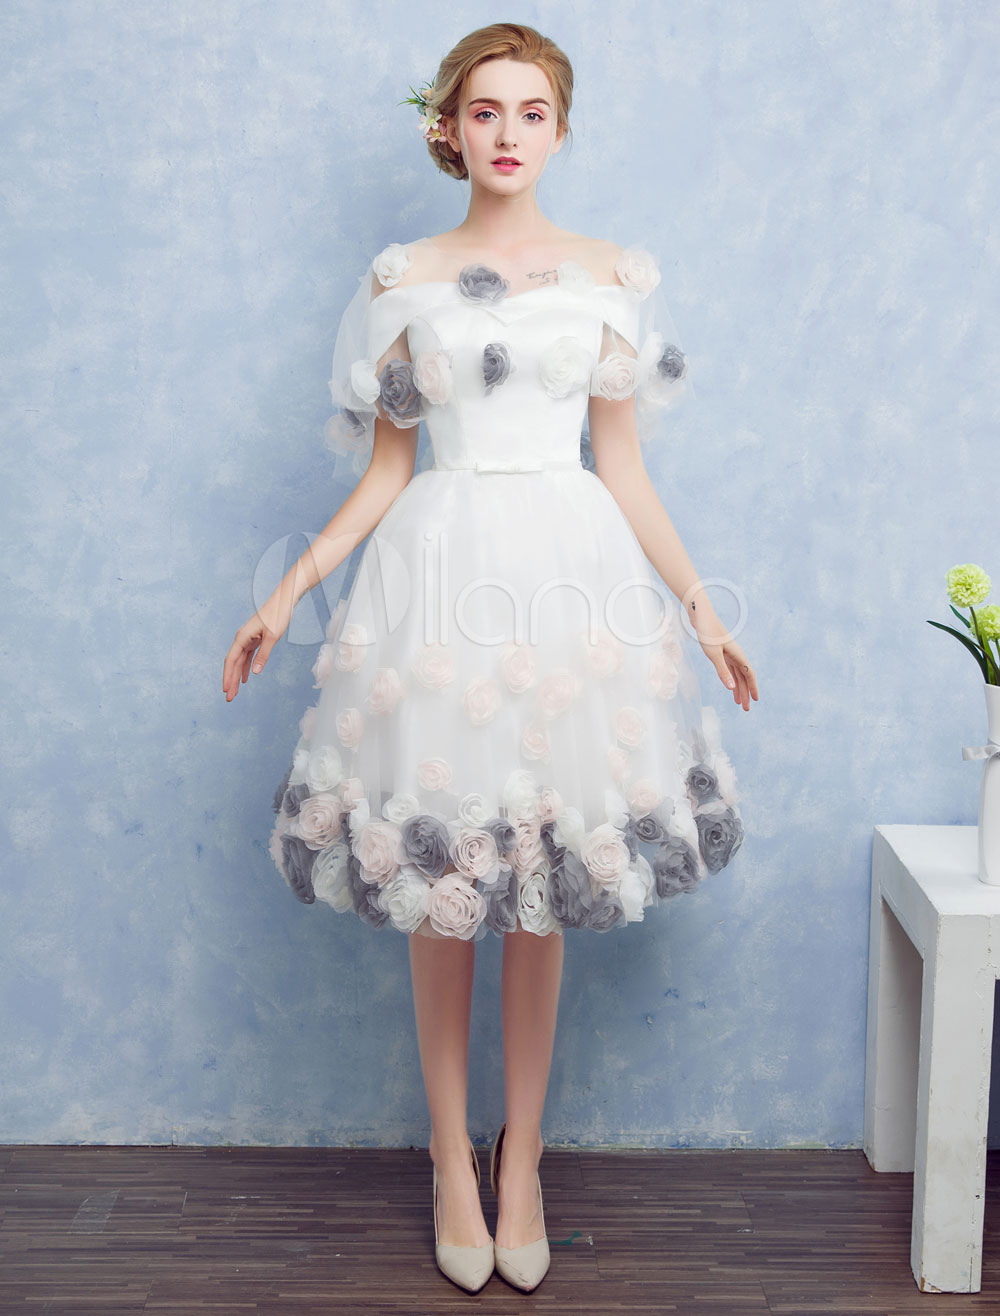 7df8464c2 White Prom Dresses 2019 Short Off The Shoulder Prom Dress Tulle 3D Flower A  Line Knee Length Homecoming Dress With Detachable Cape - Milanoo.com